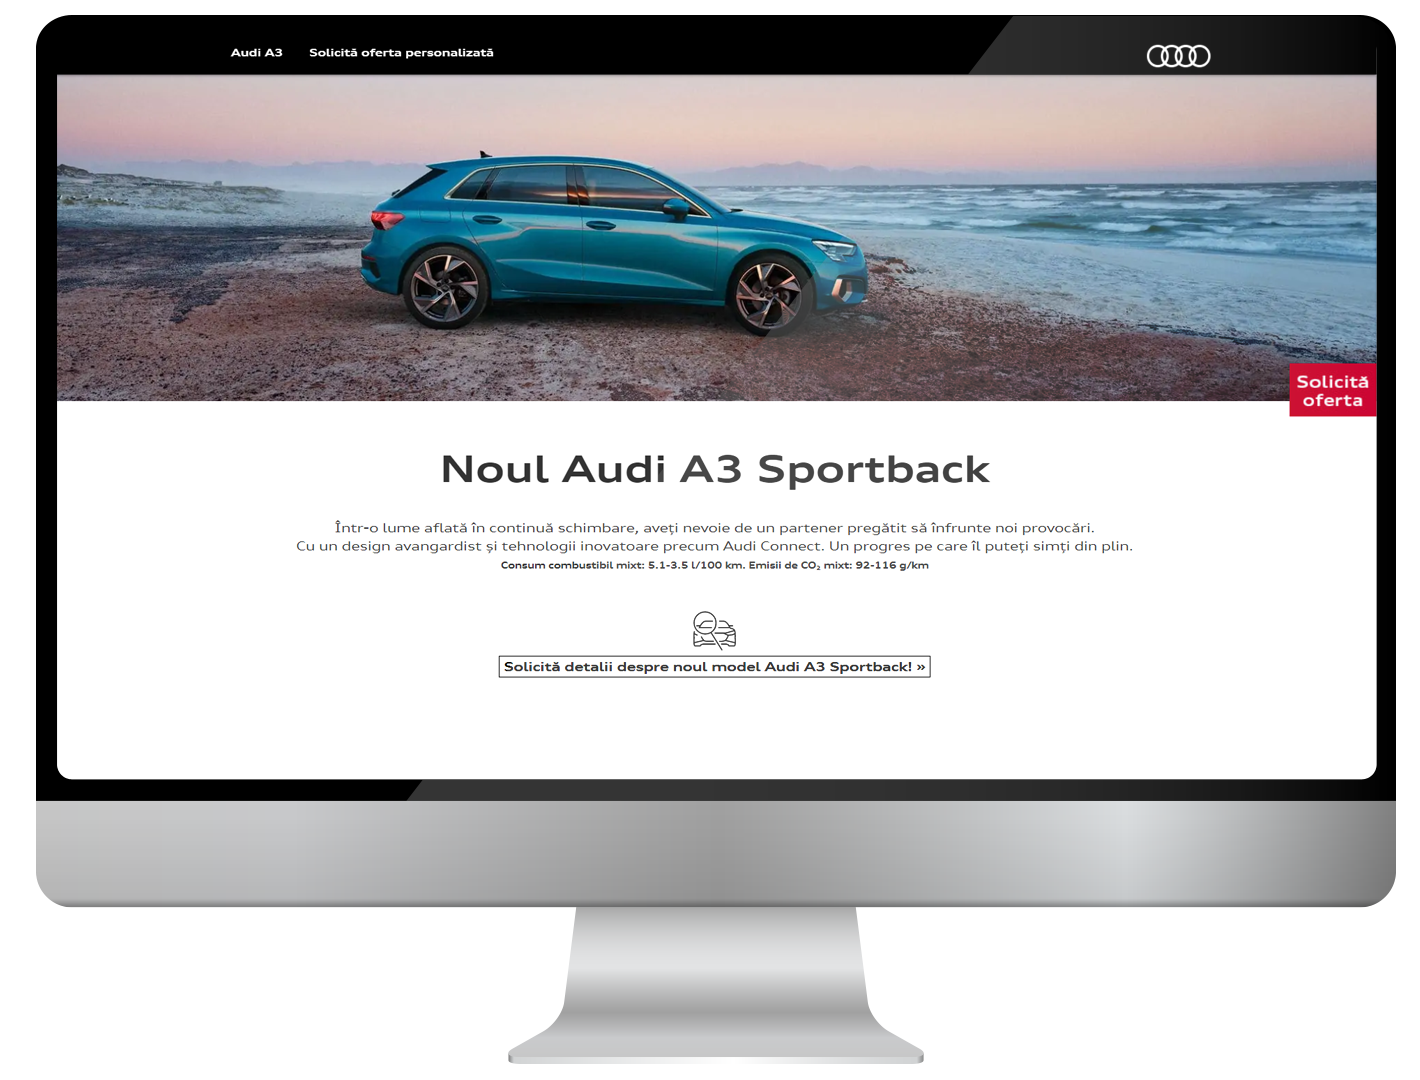 Users of the internet, meet Audi A3